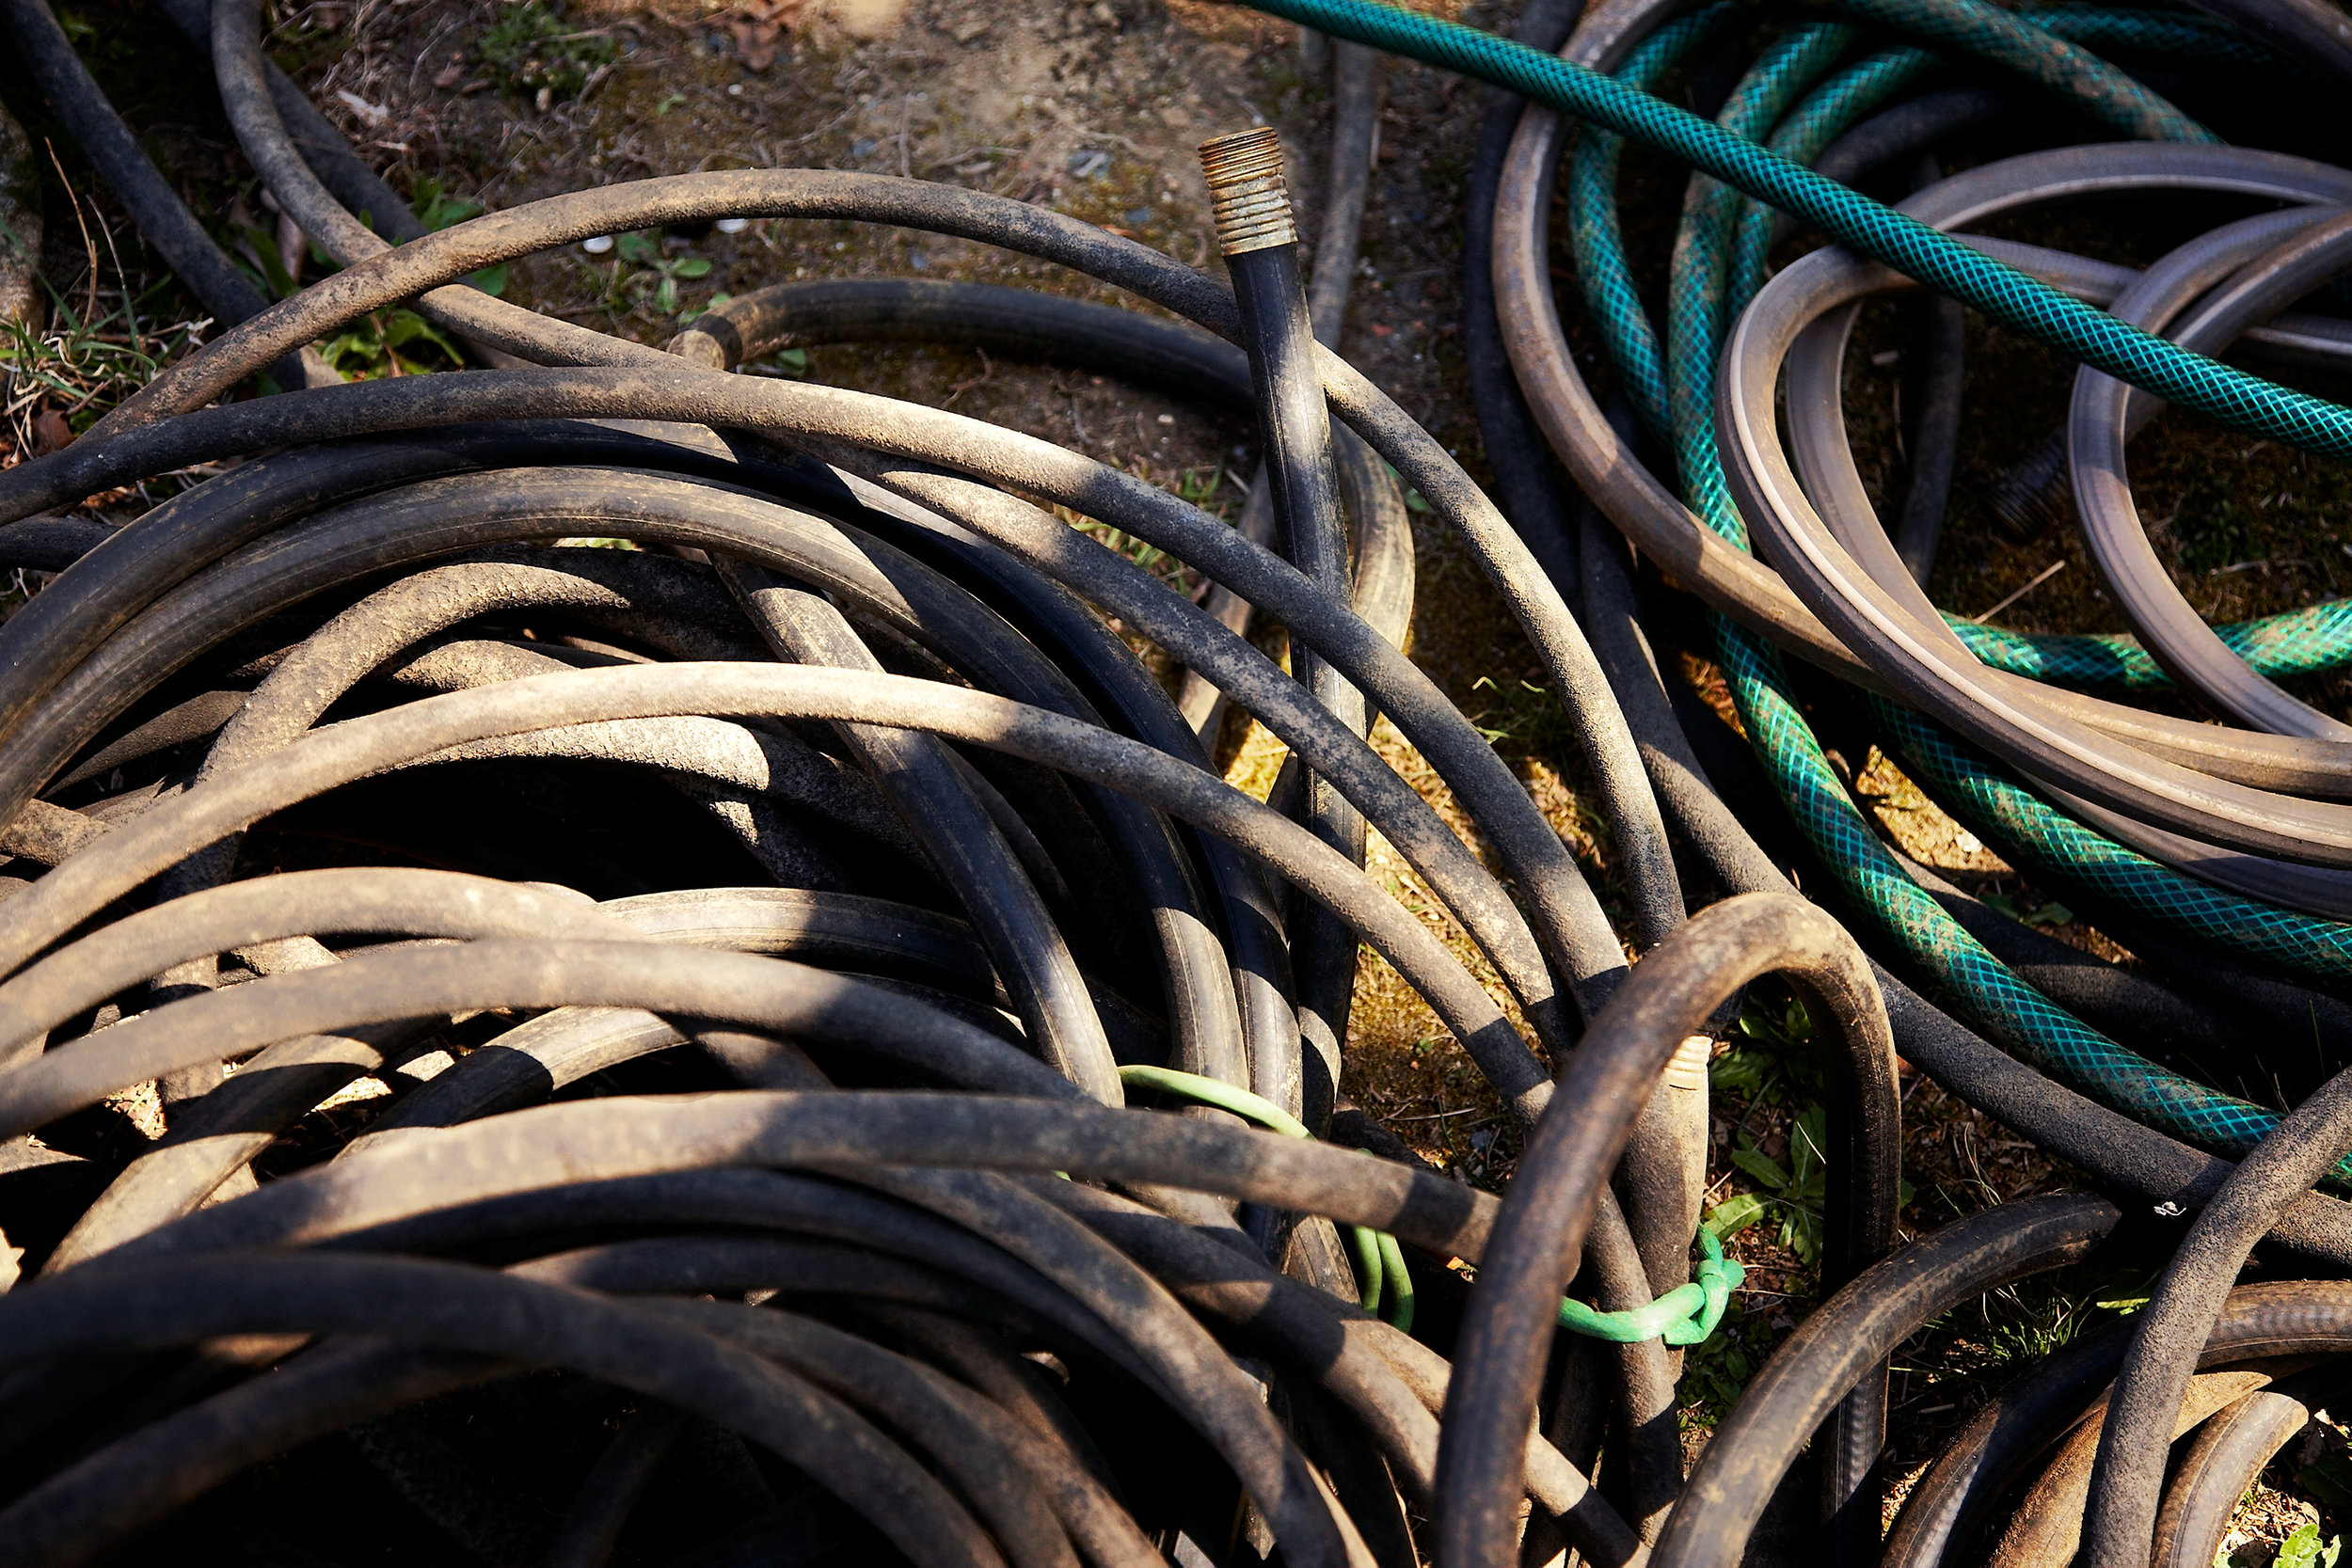 GARDEN-HOSE-WILTSHIRE-FARM-©-JONATHANR.-BECKERMAN-PHOTOGRAPHY-040612.jpg